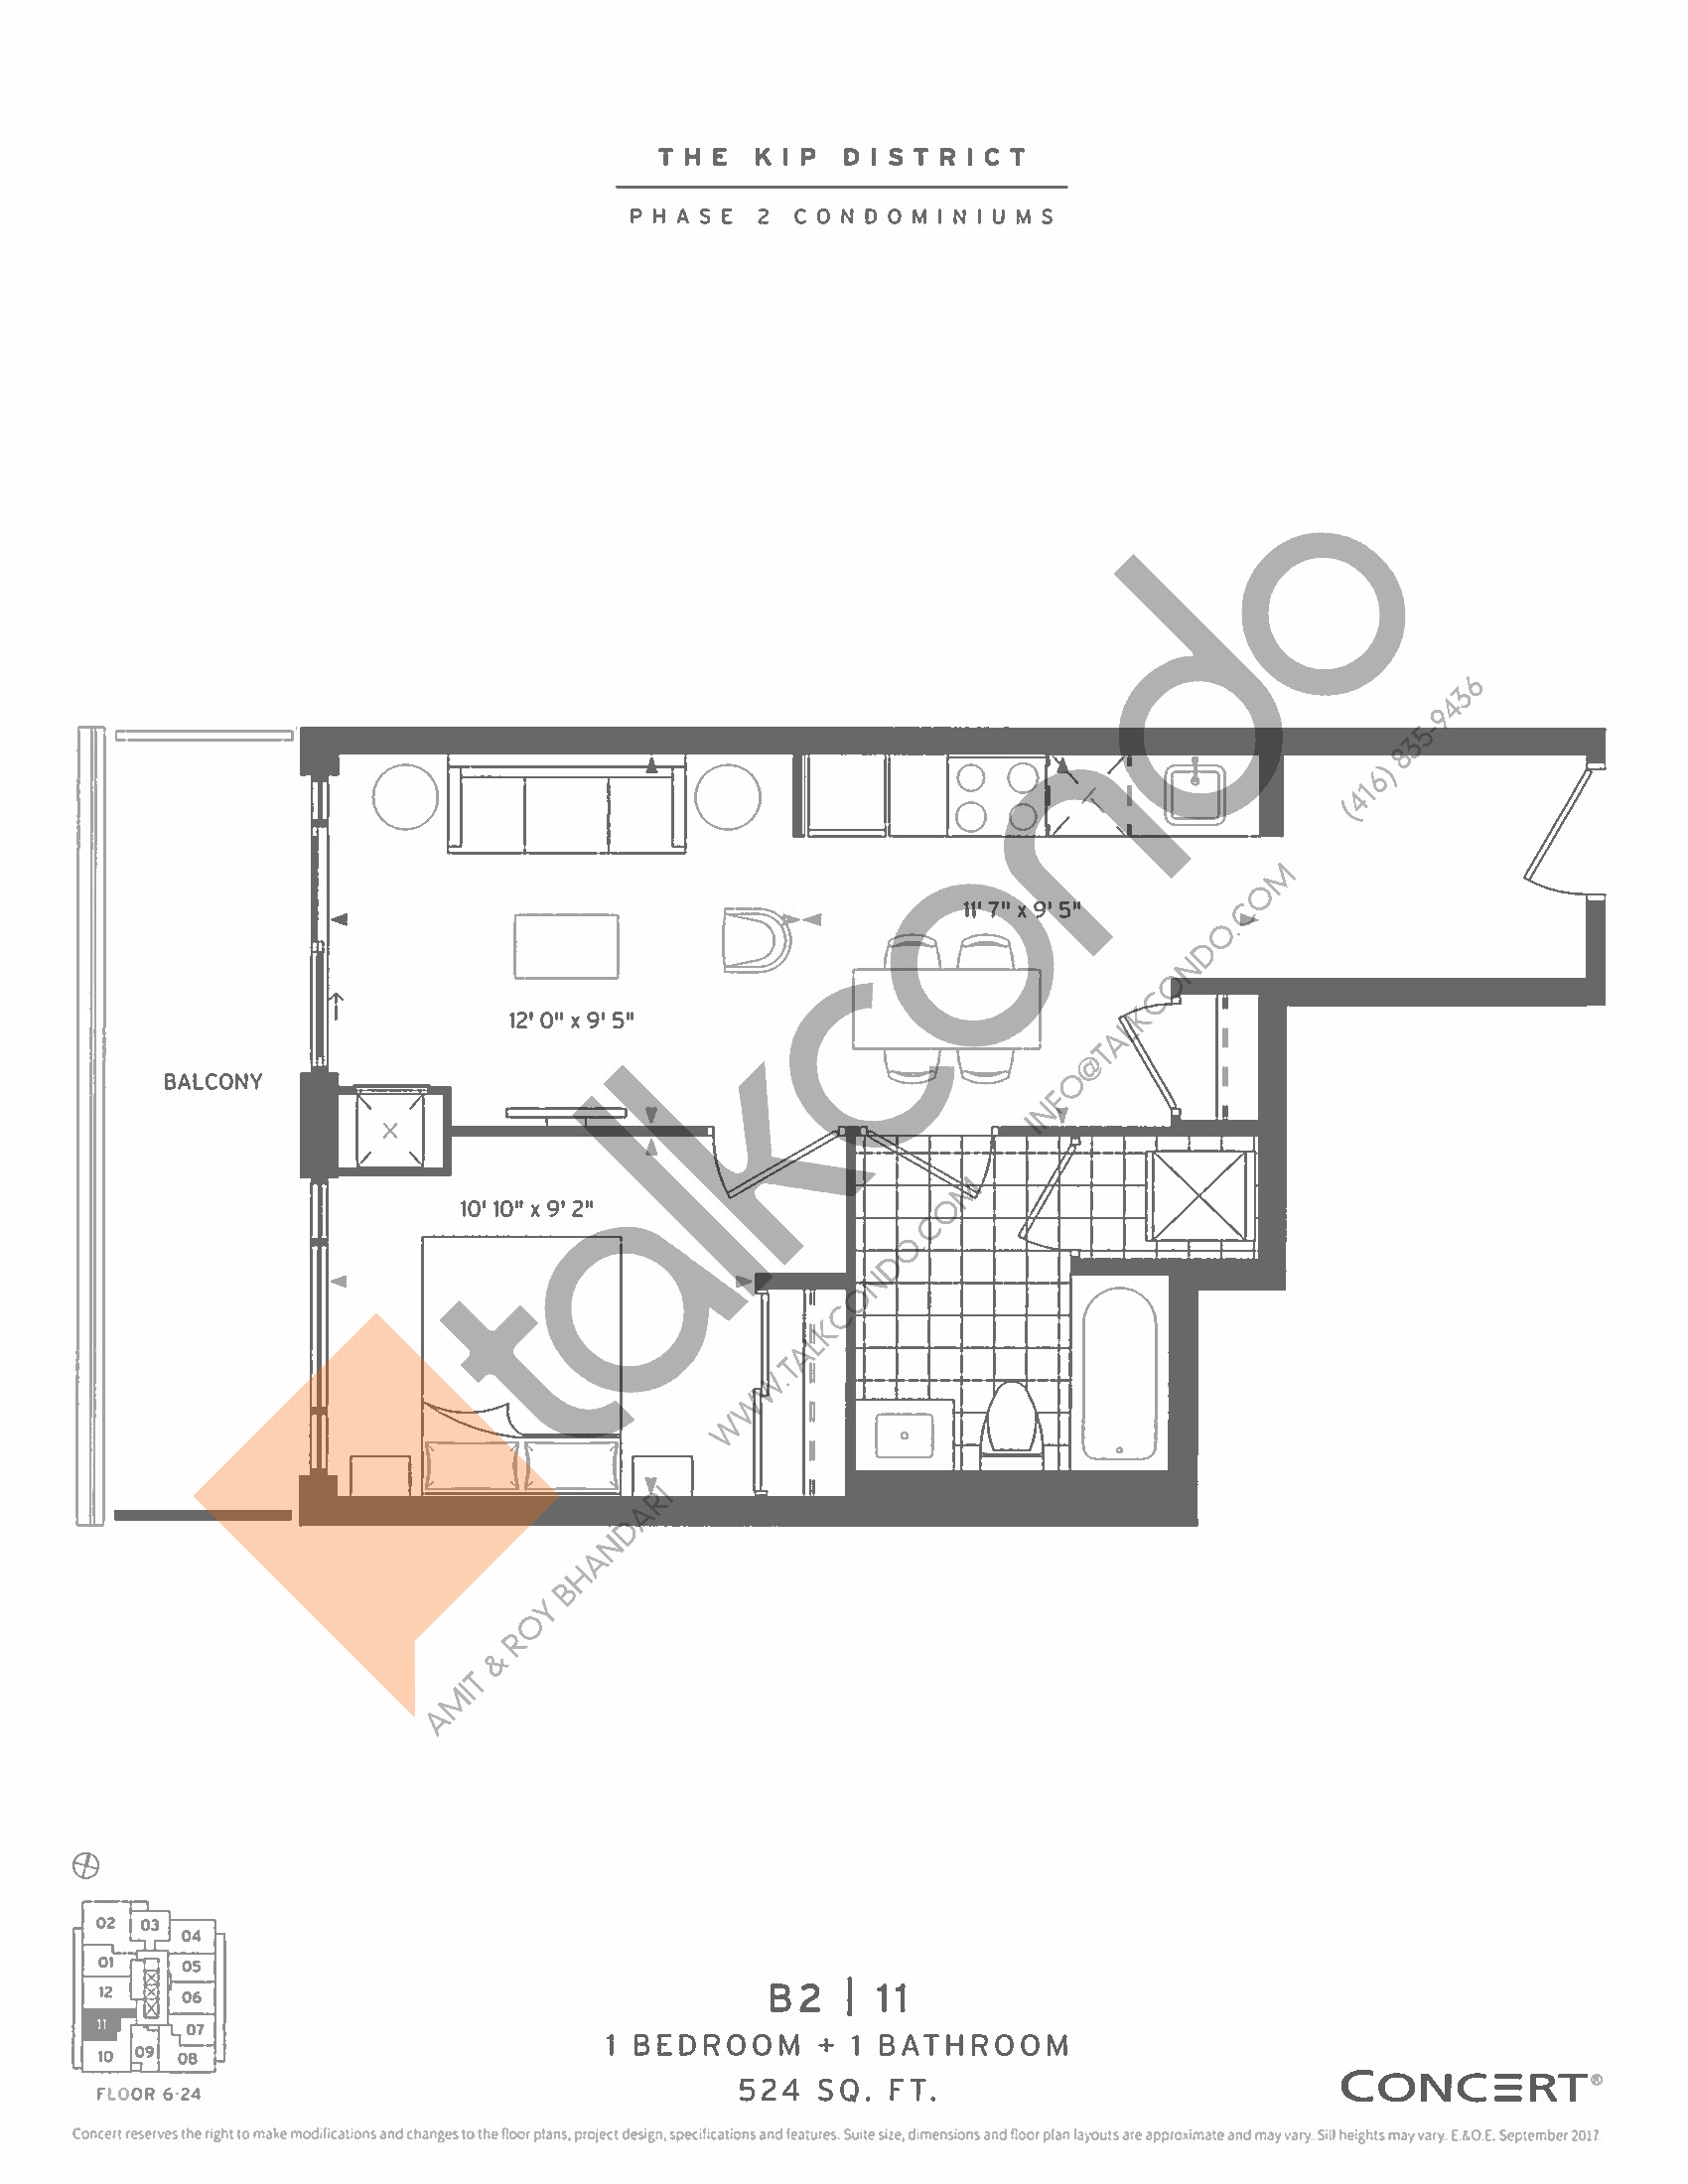 B2 | 11 Floor Plan at The Kip District Phase 2 Condos - 524 sq.ft